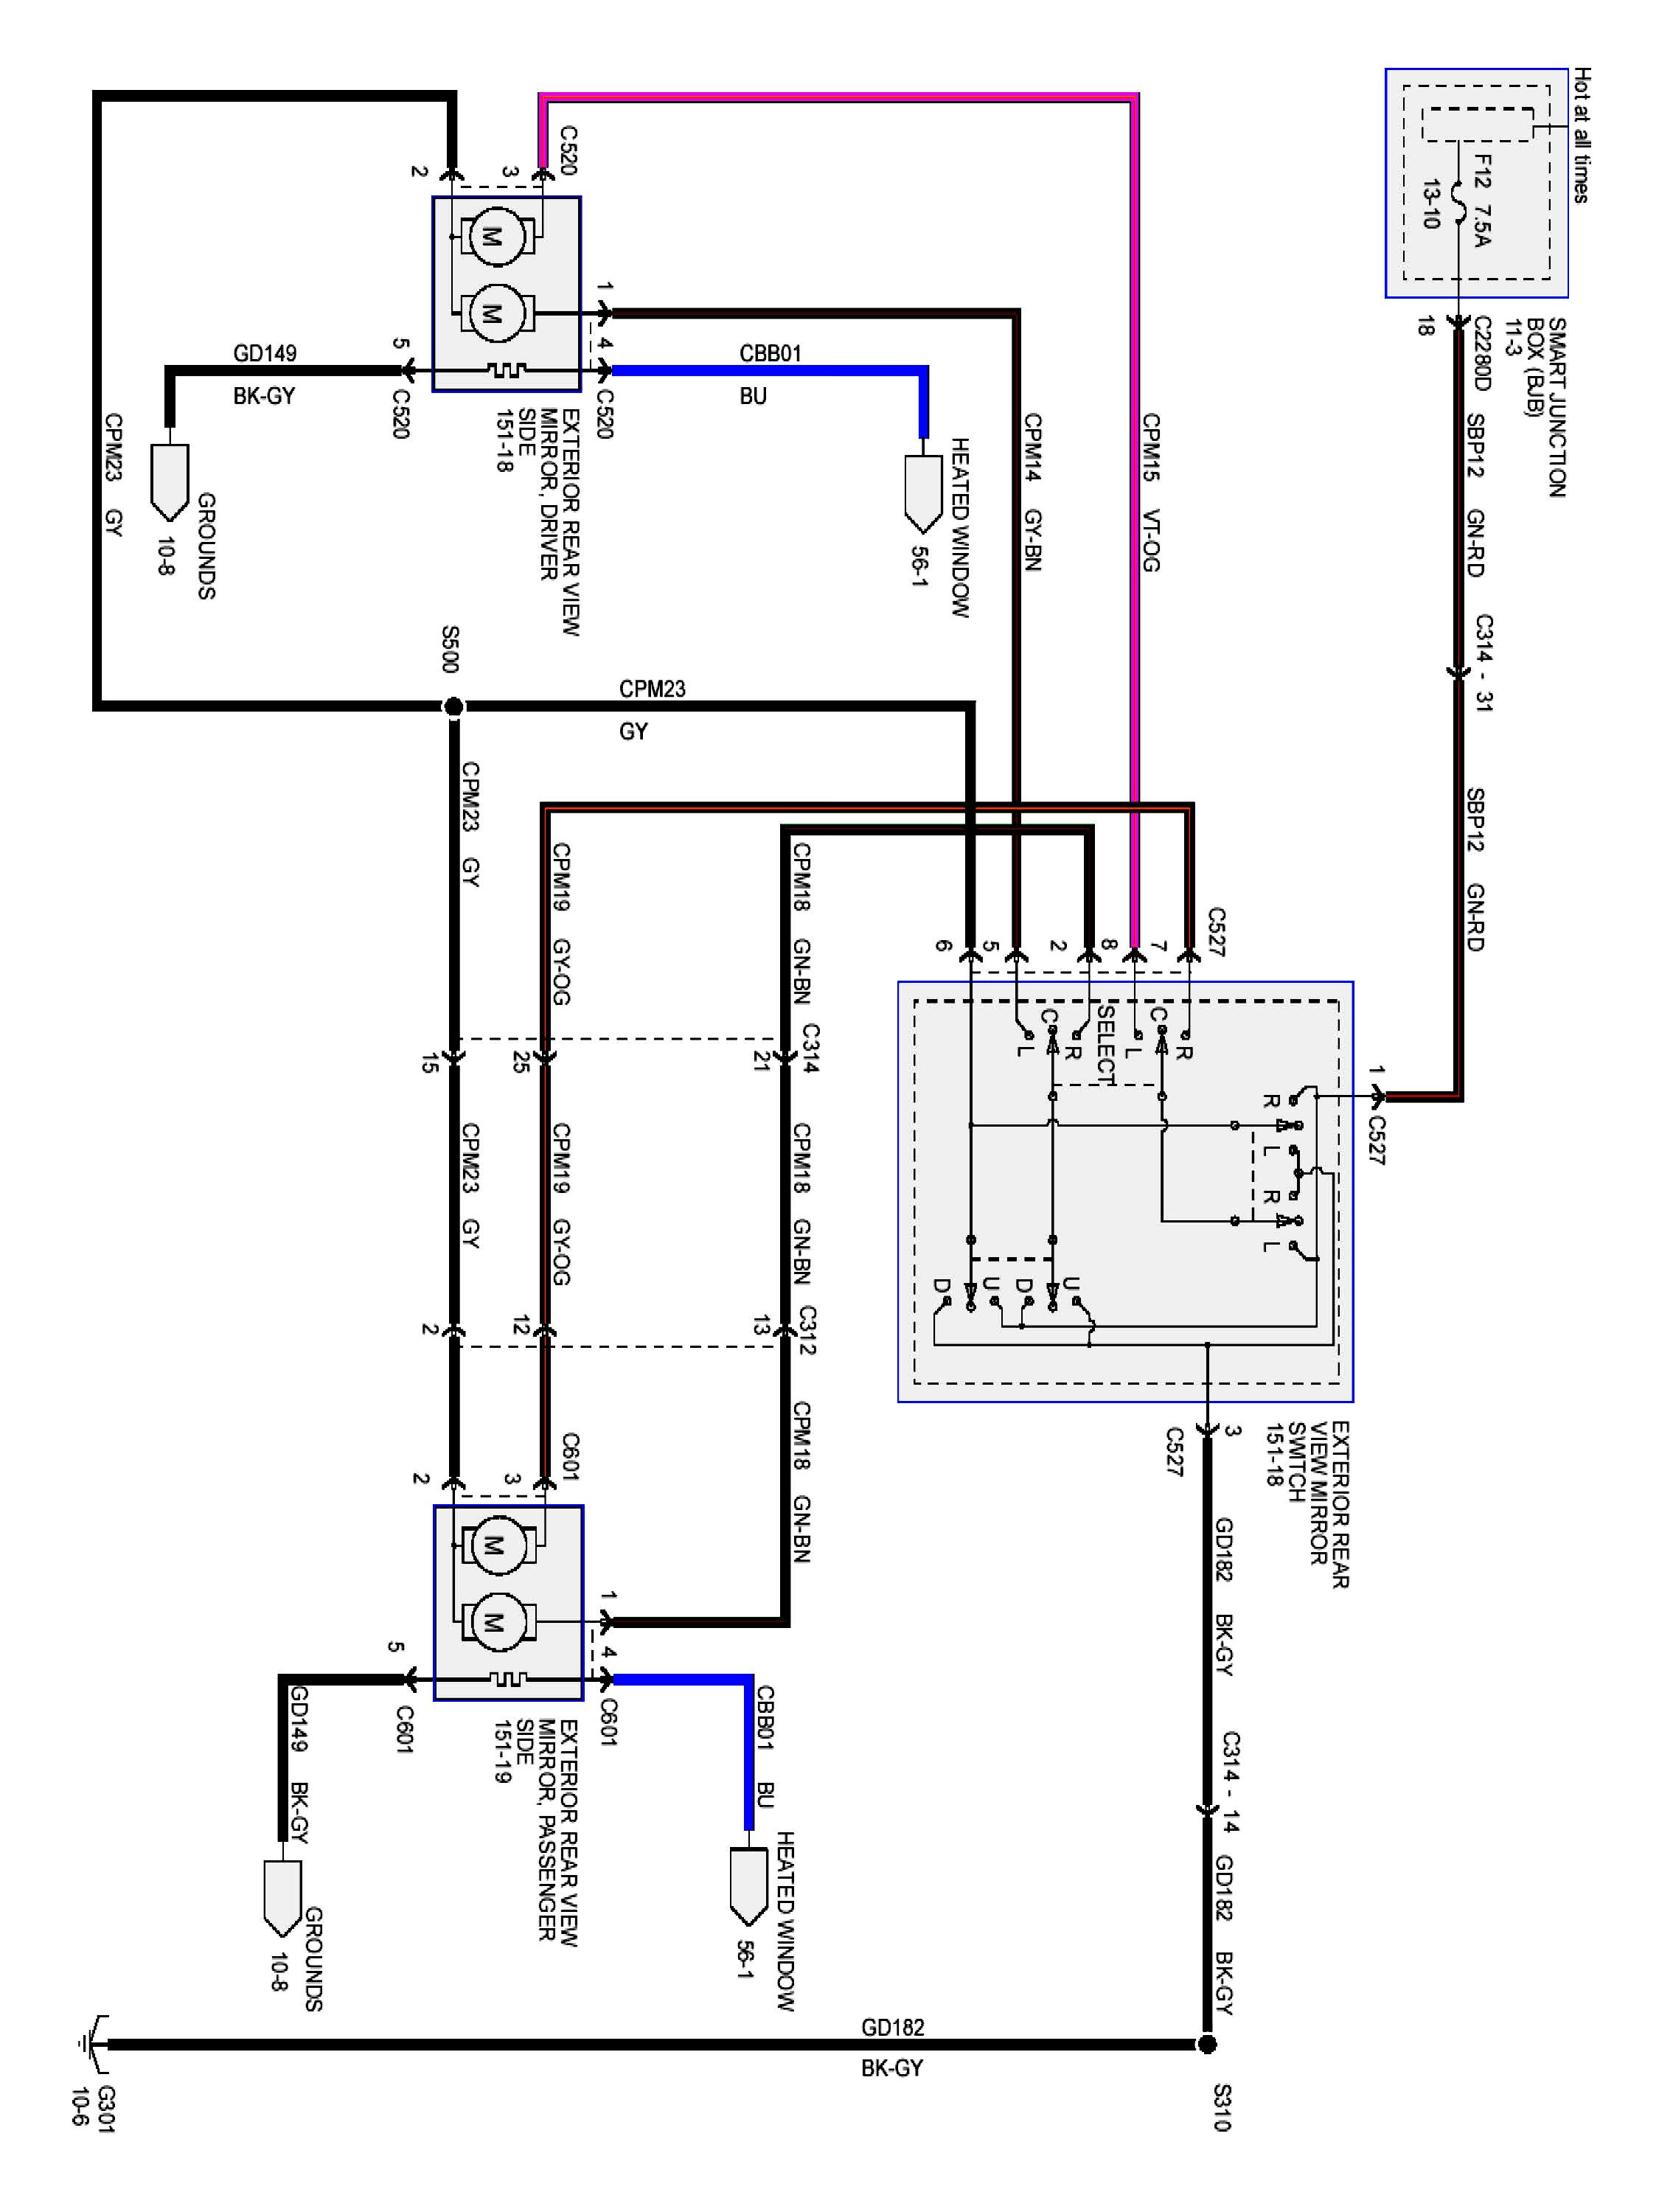 2009 Ford Escape Wiring Diagram Collection